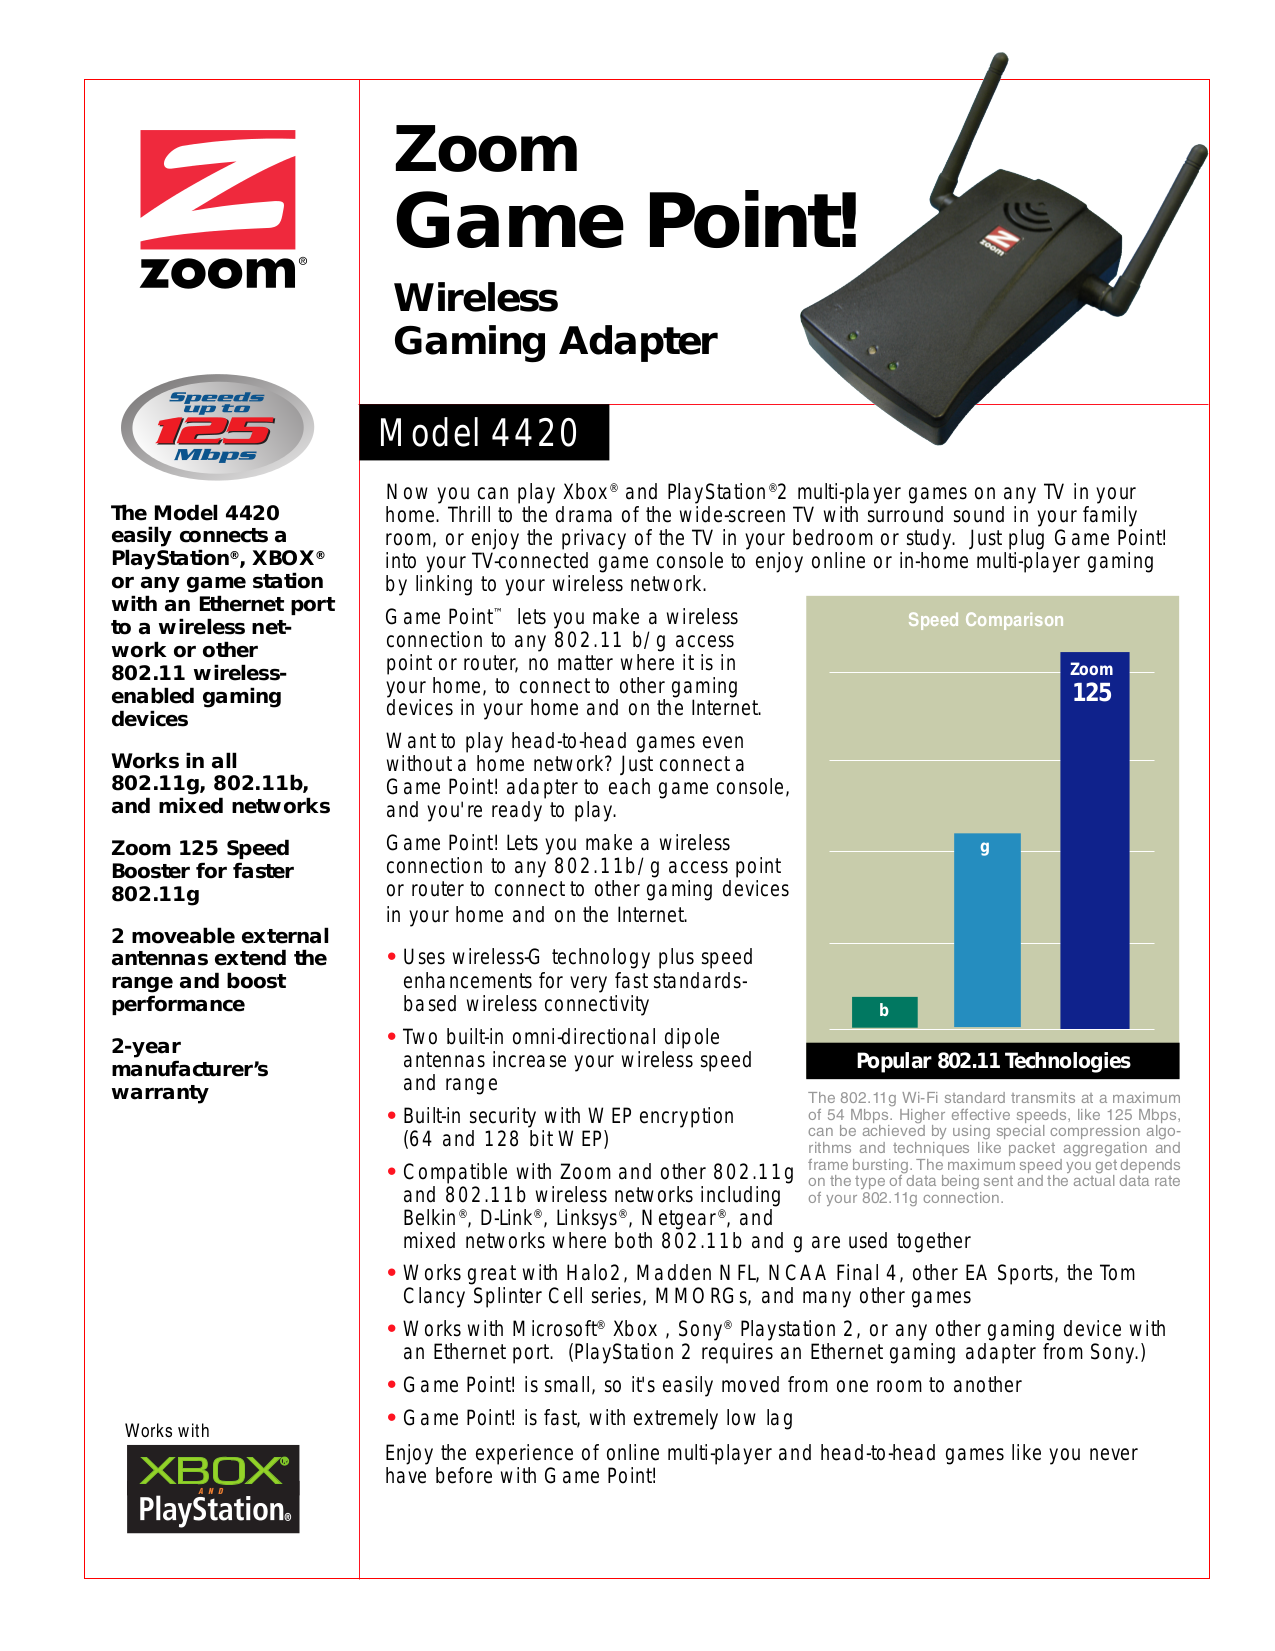 pdf for Zoom Other 4420 Wireless Gaming Adapters manual